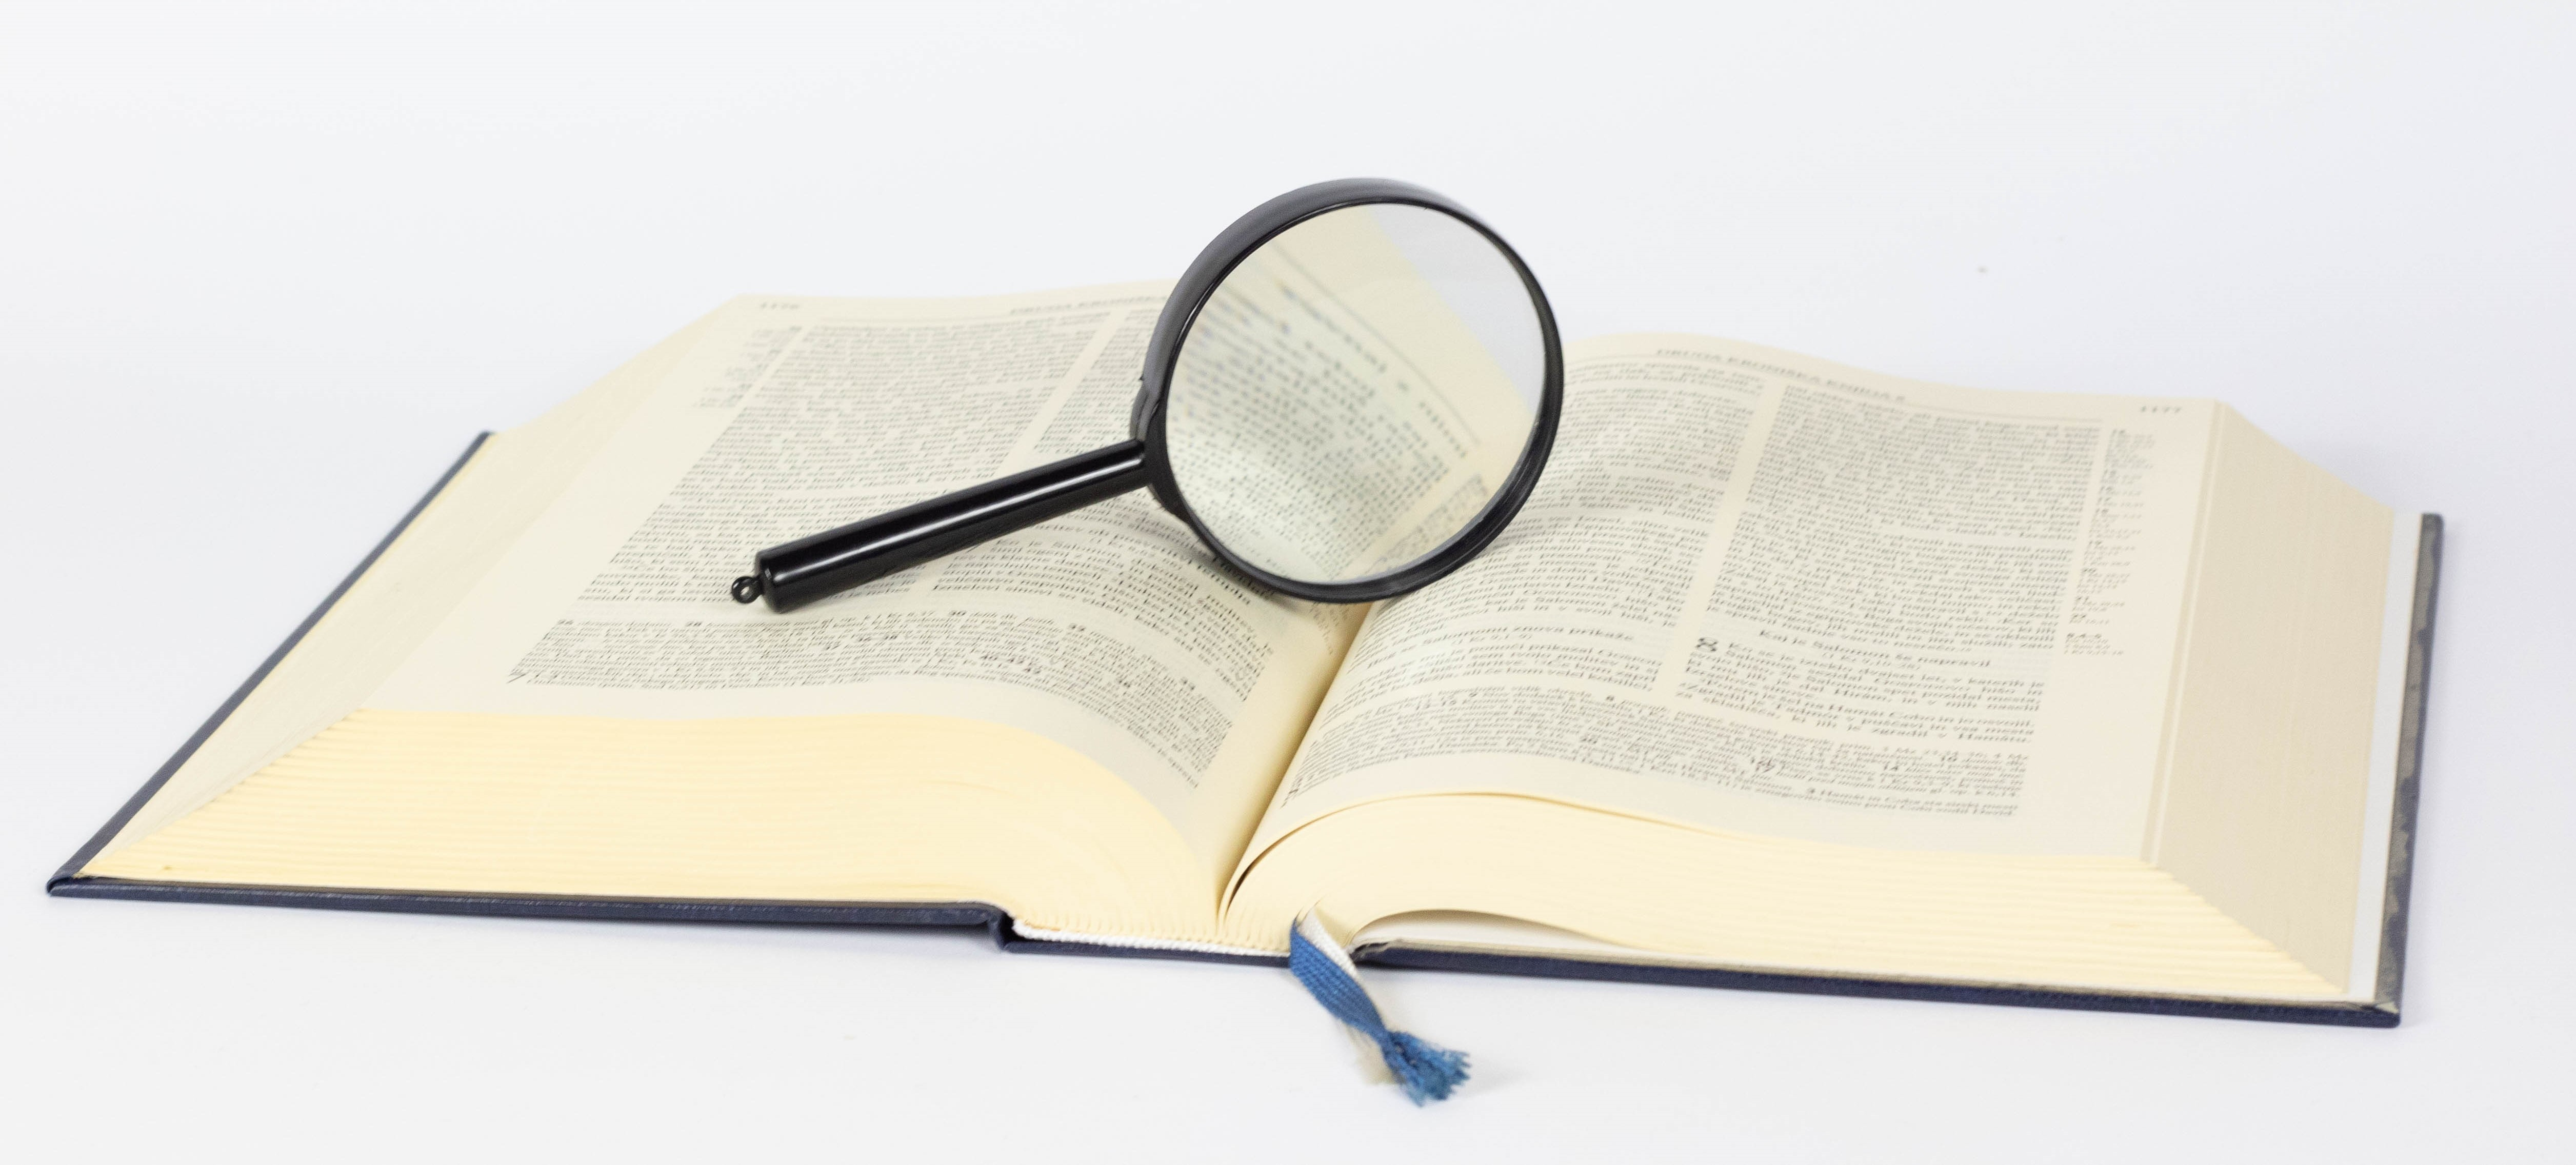 Image of a magnifying glass on a book / Photo by Marco Verch on Flickr